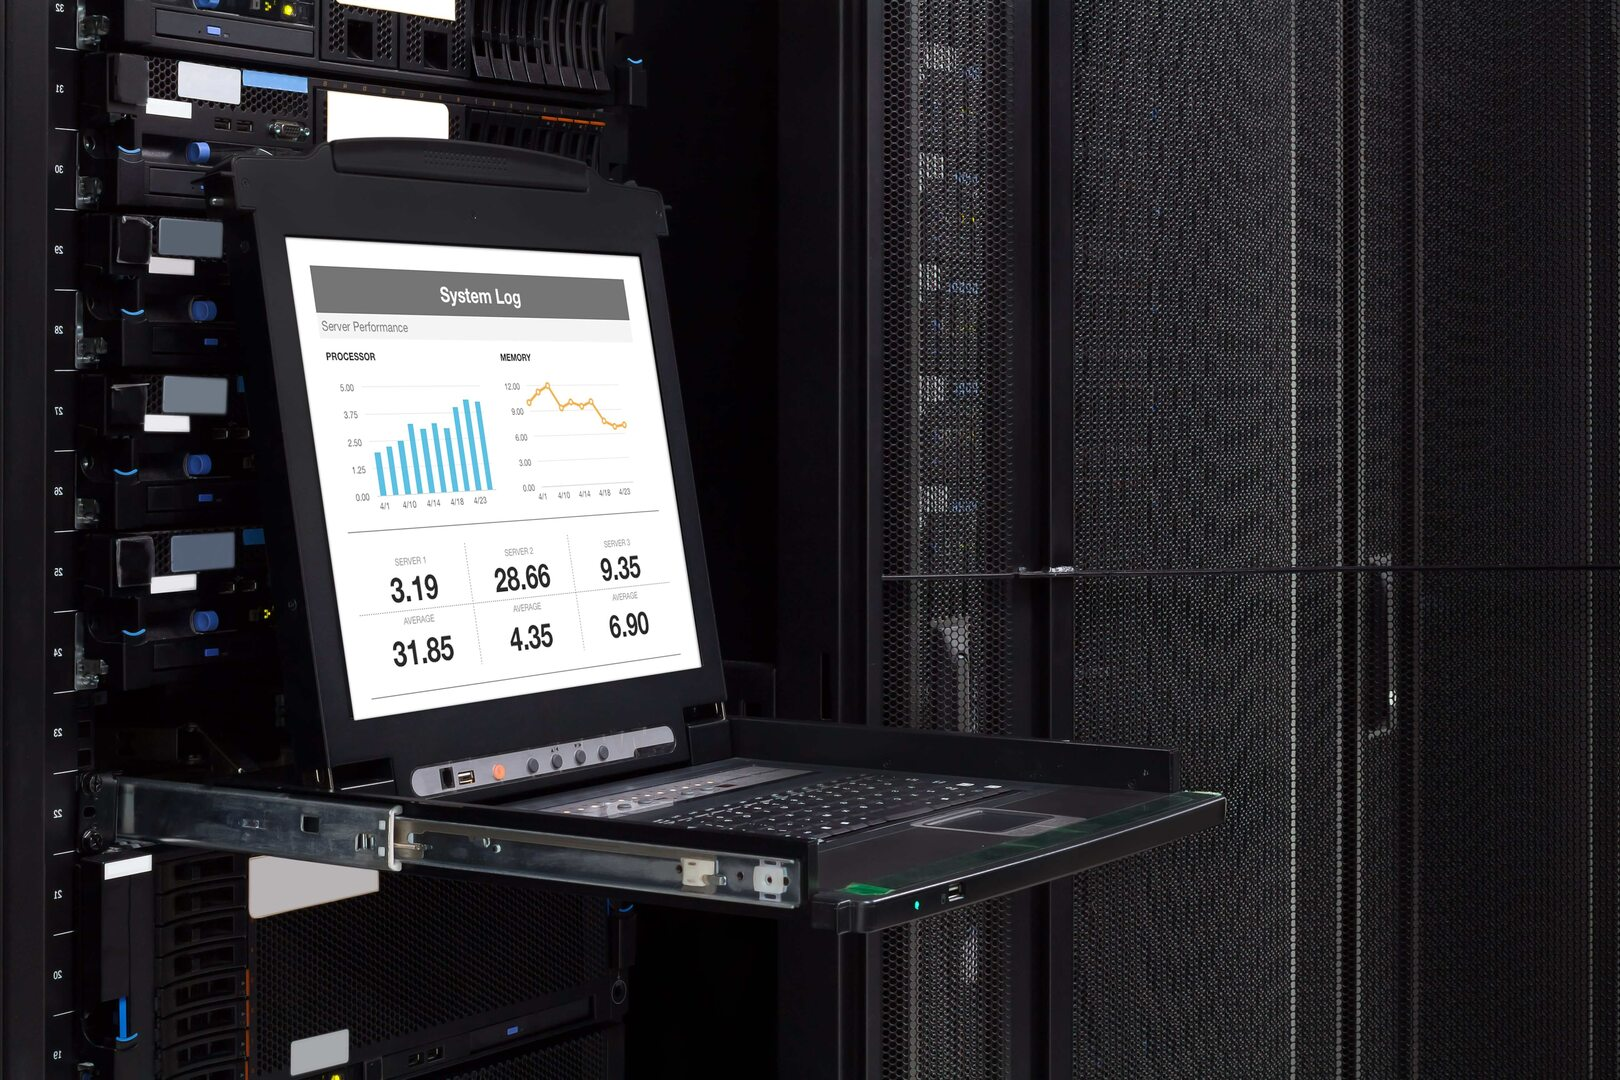 Managed IT Support Services - Server Monitoring